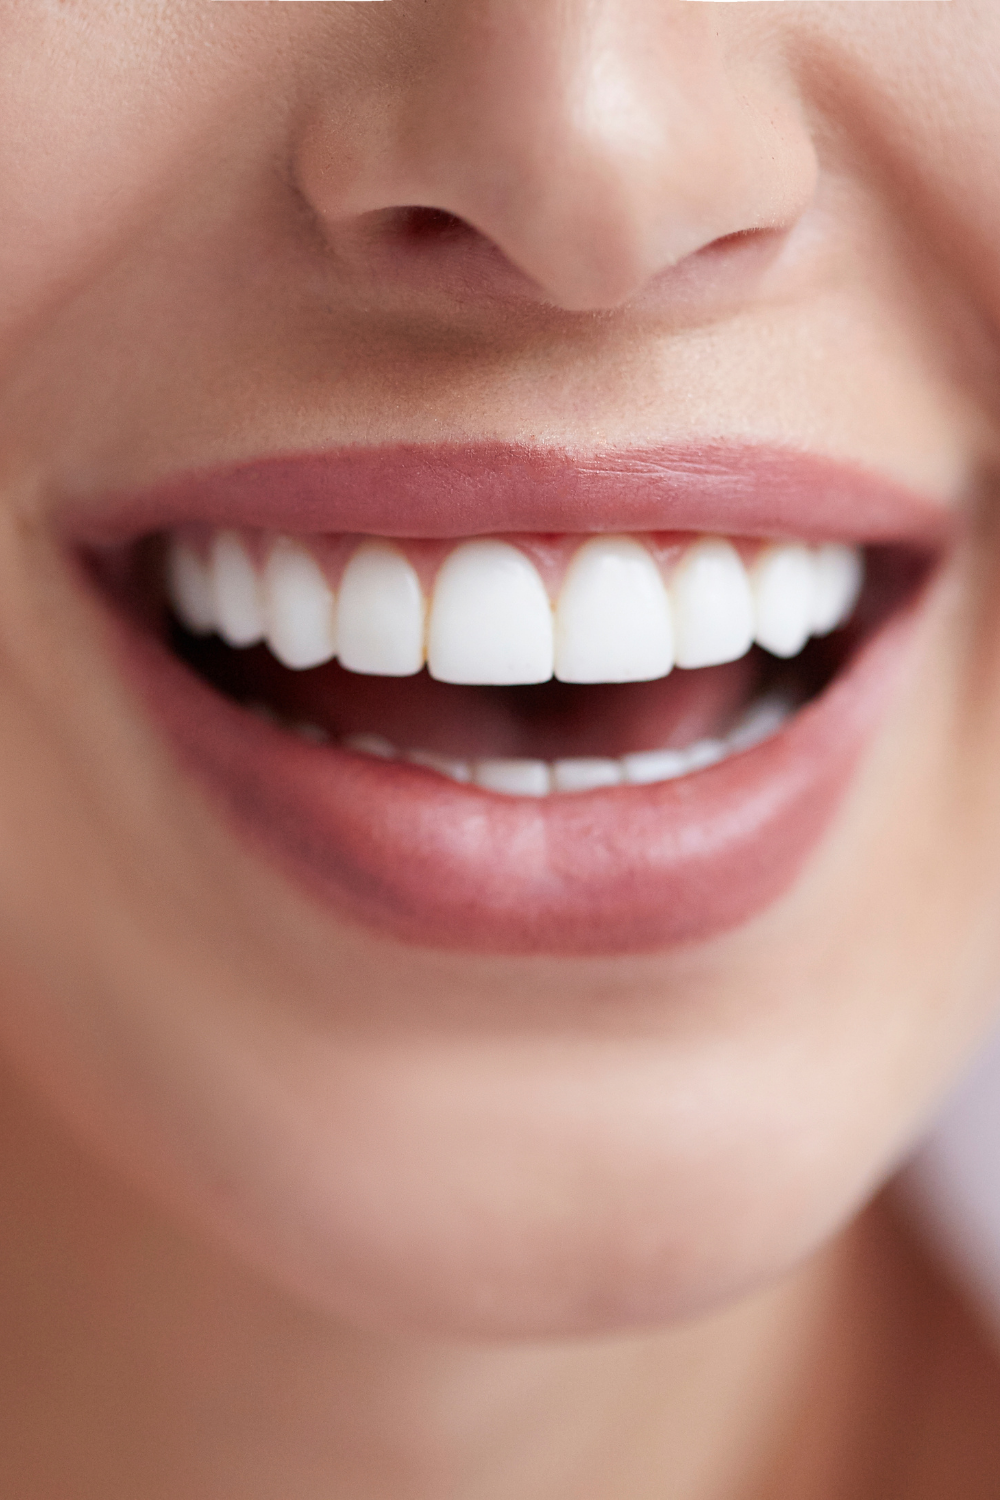 How to save money on cosmetic dental treatments